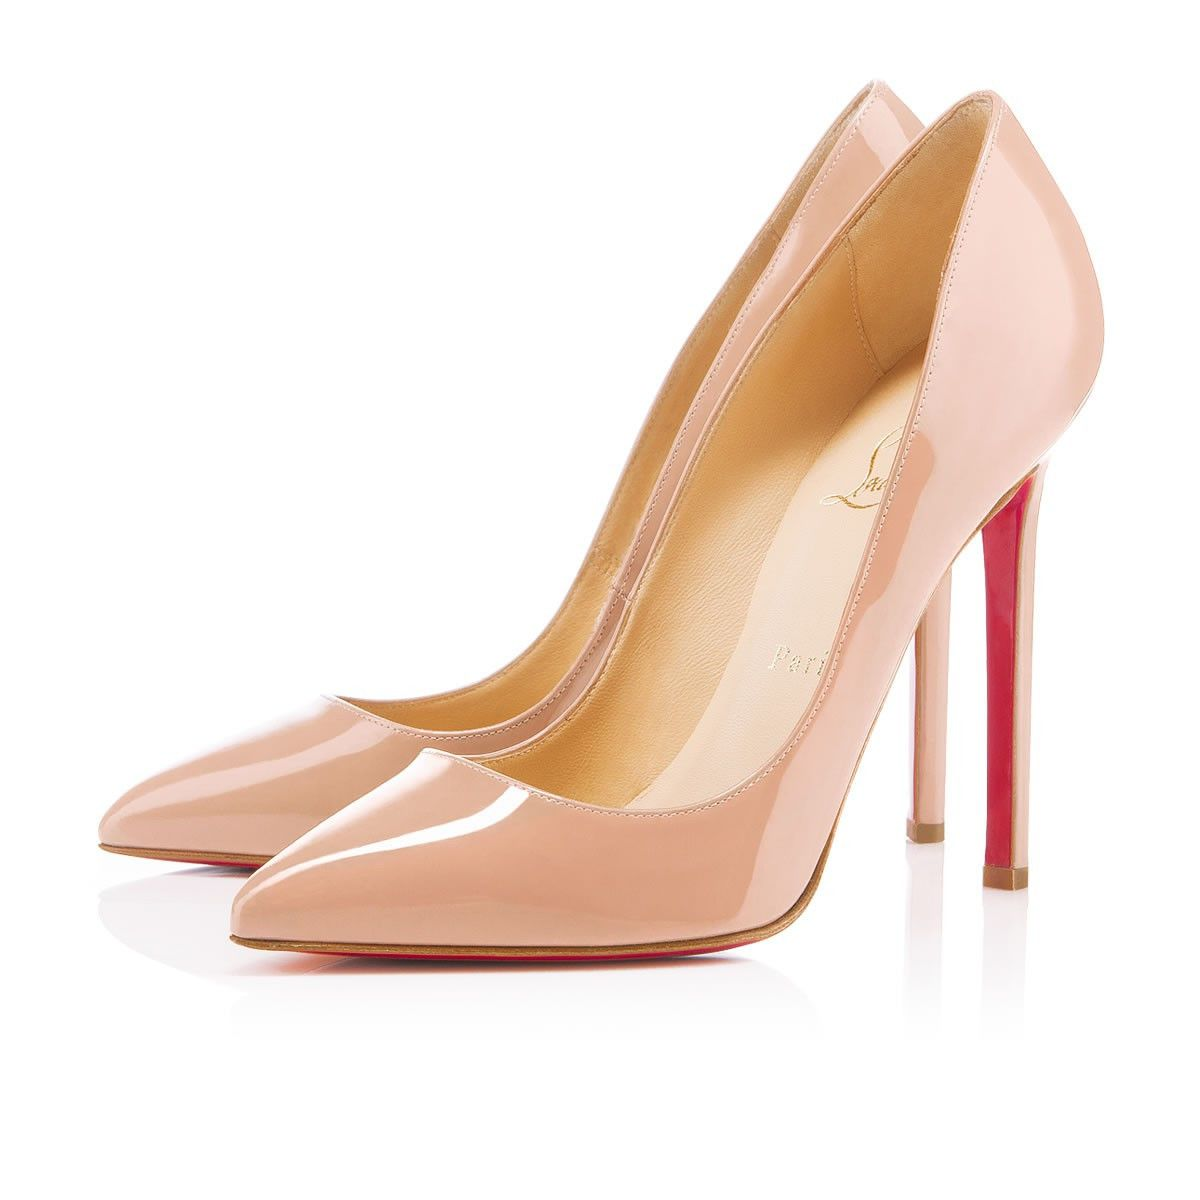 #CL #Louboutin Christian Louboutin Pigalle 120mm Pumps Nude ELR Brings You Happier Life And Makes You Relexed In The Work Time!